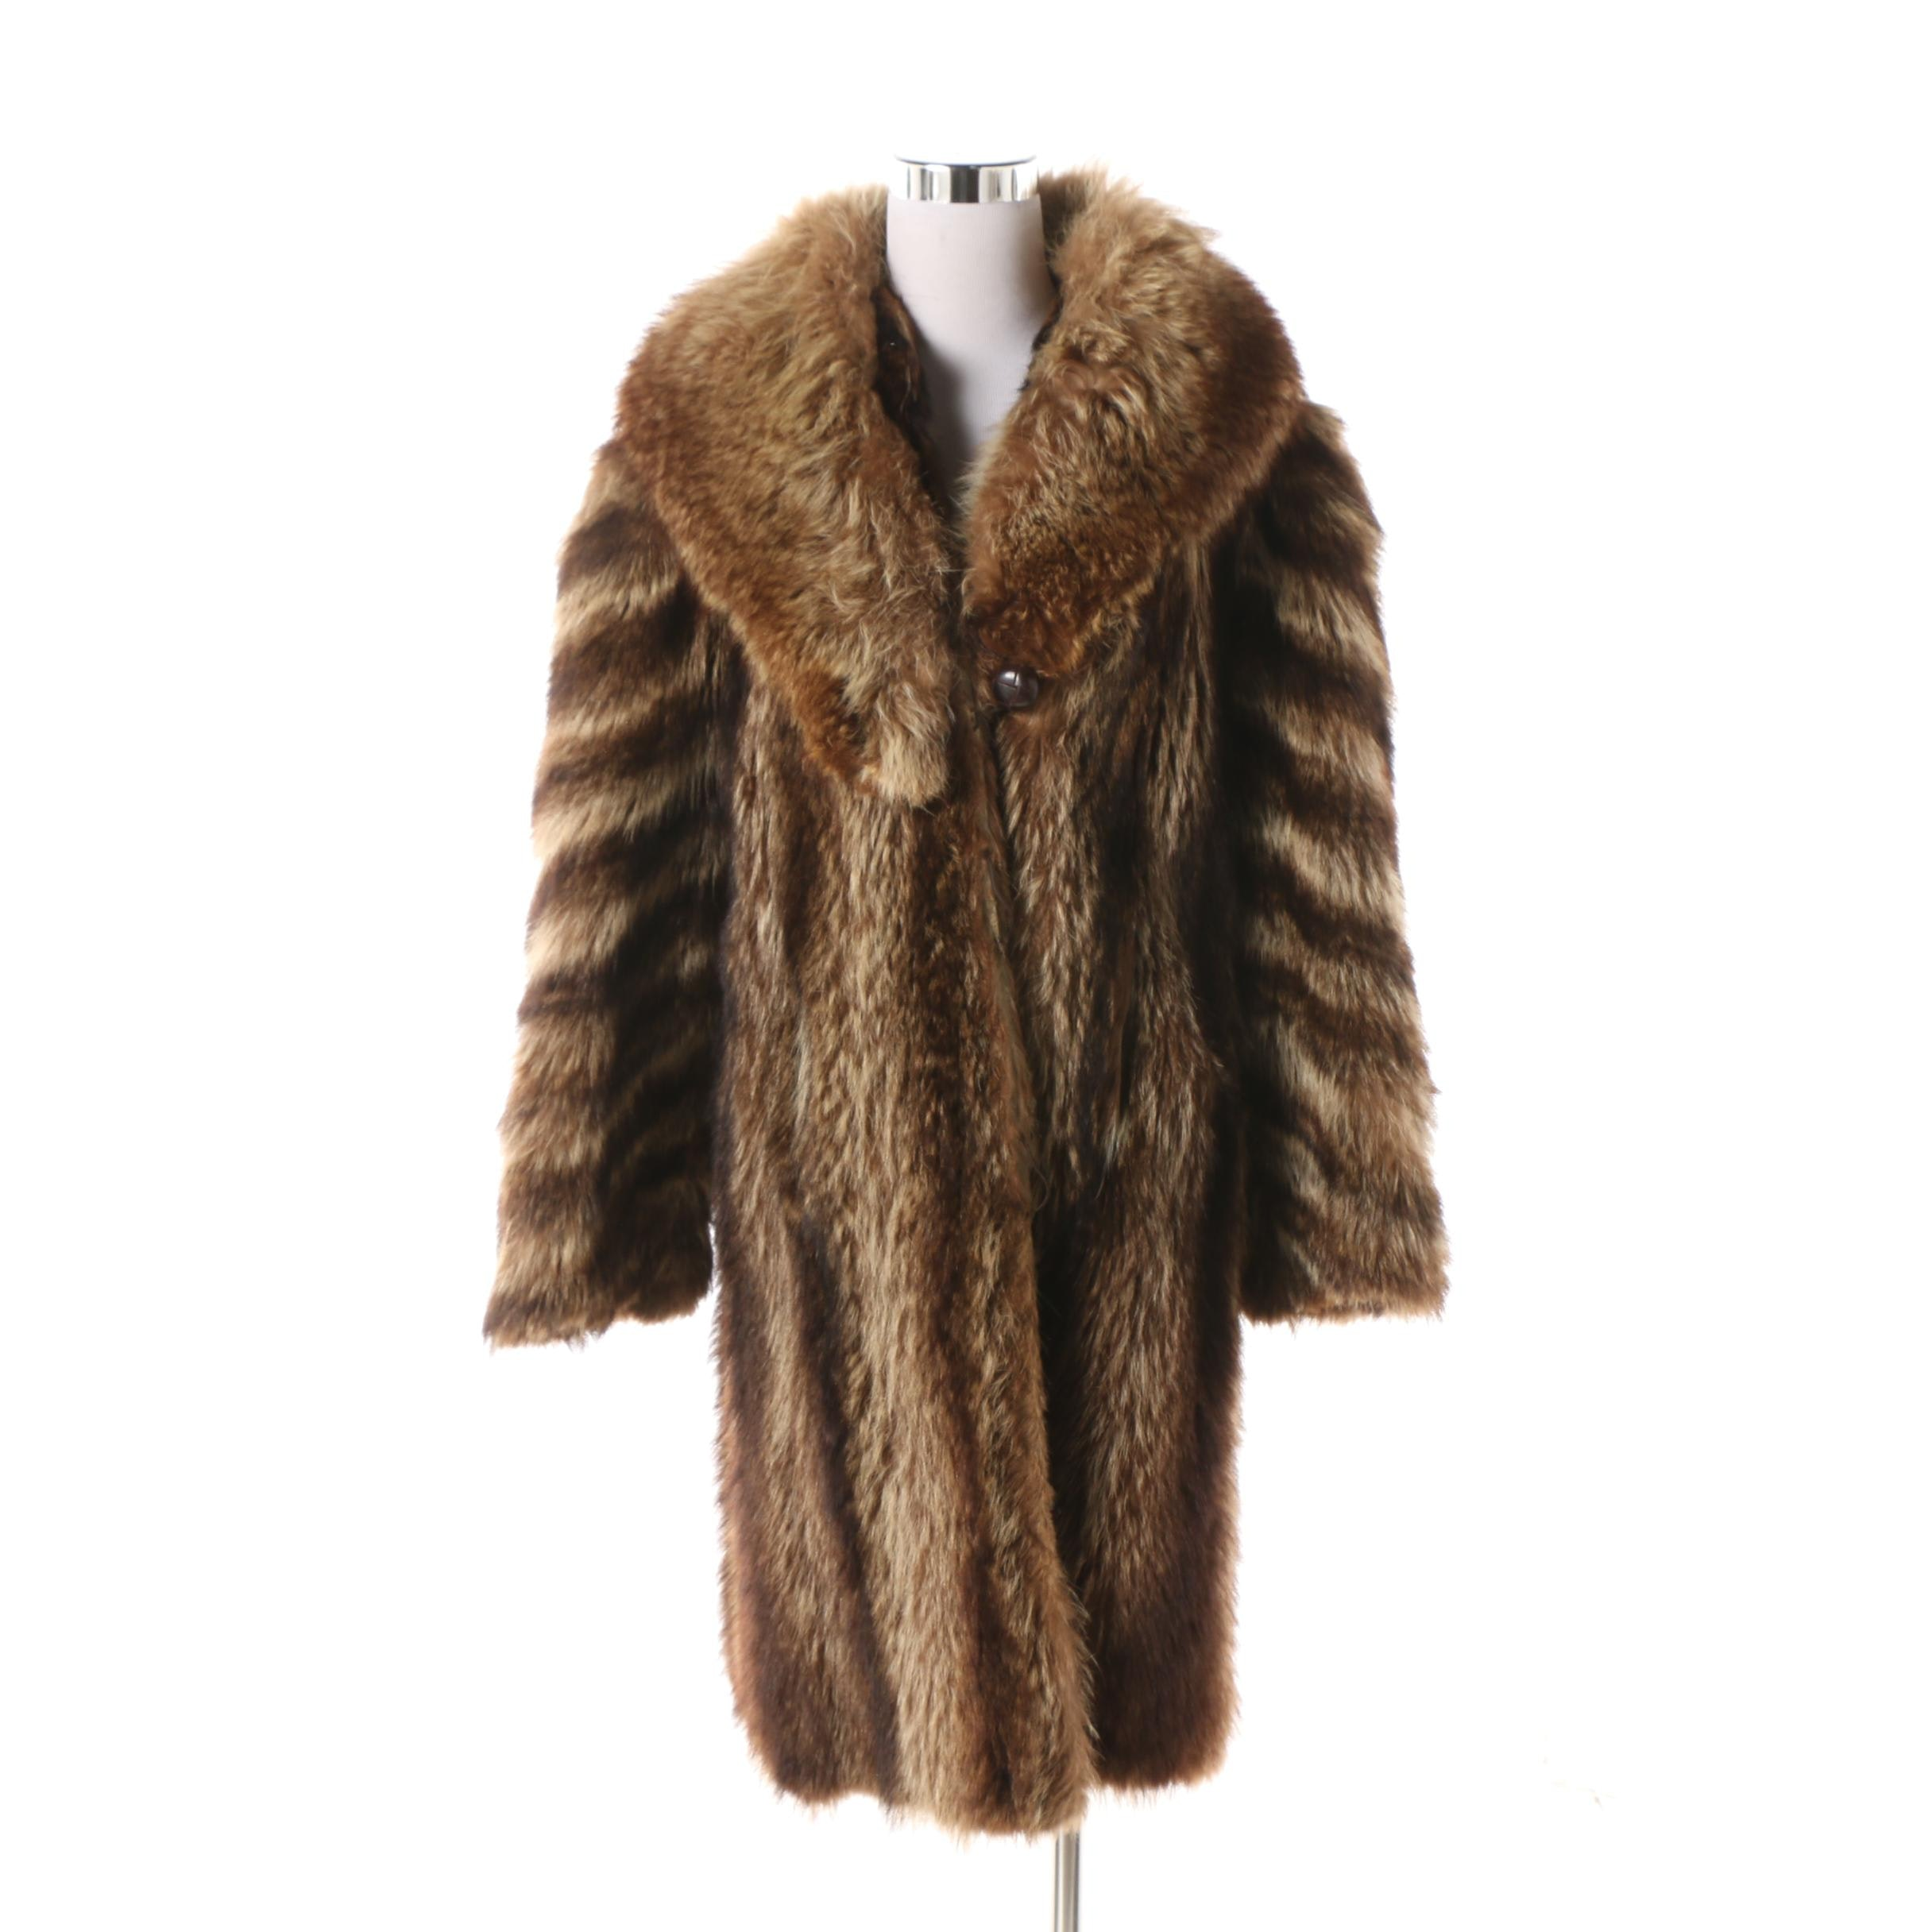 Women's Vintage Nelson Furs Raccoon Fur Coat